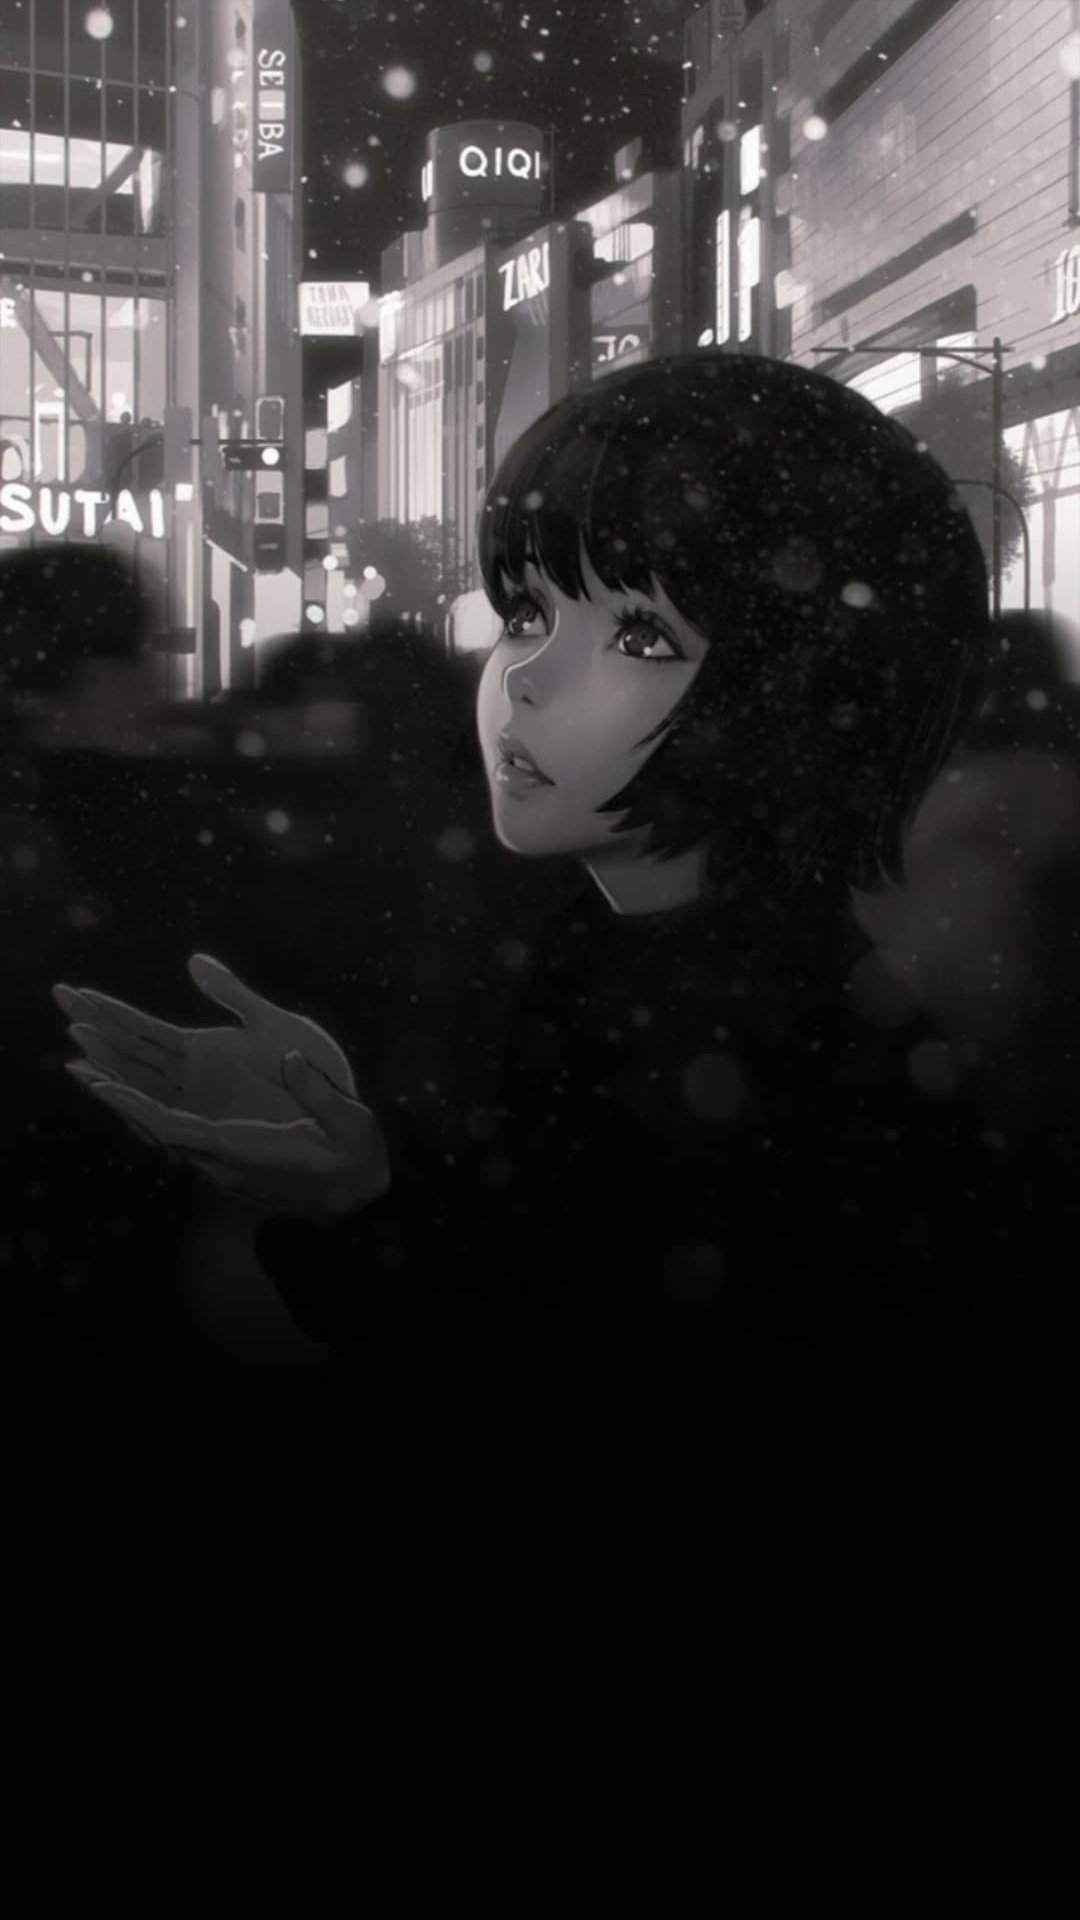 Anime girl wallpaper black and white